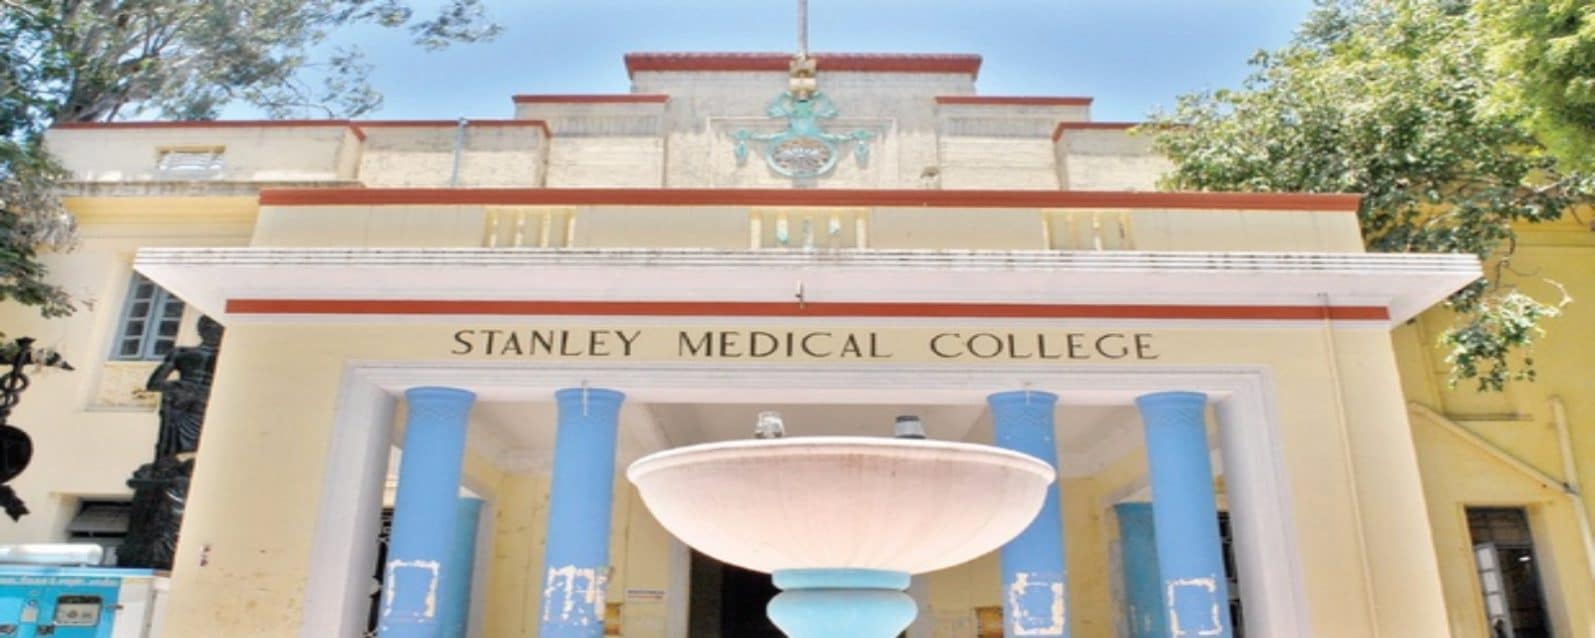 Stanleys Medical College Chennai (SMC)